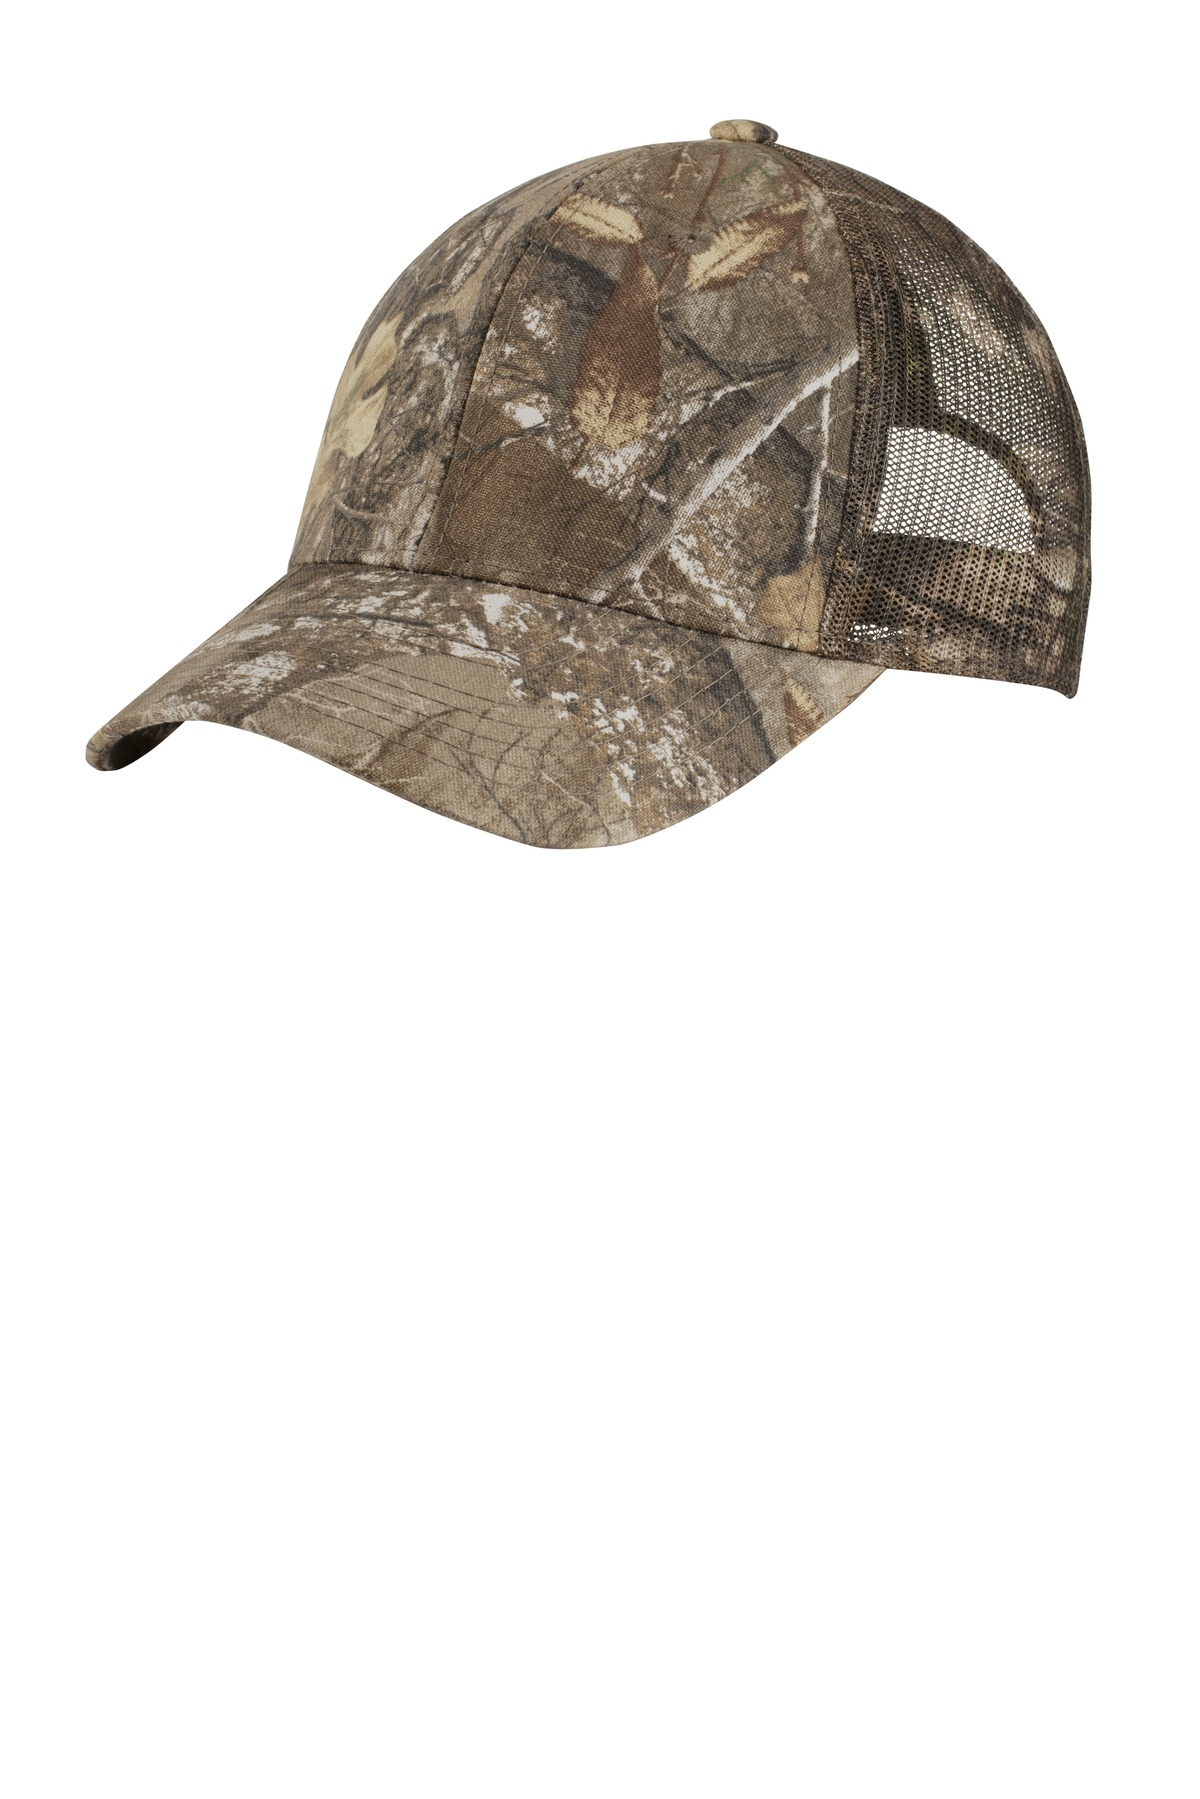 Port Authority ®  Pro Camouflage Series Cap with Mesh Back.  C869 - Realtree Edge